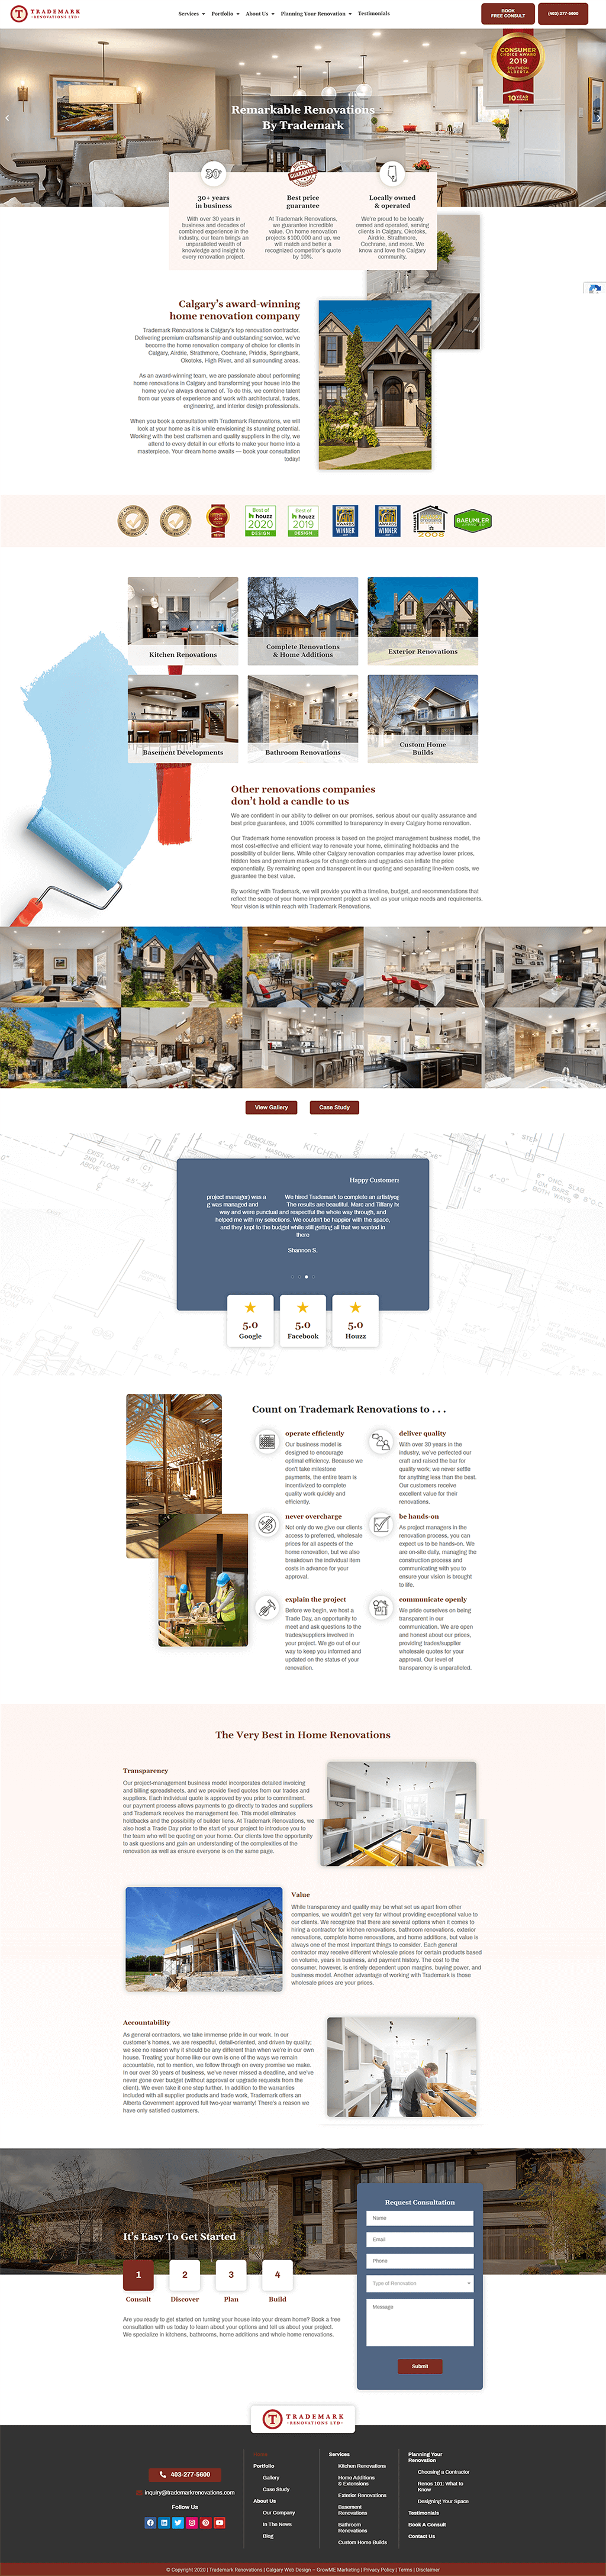 Trademark Renovations Home Page